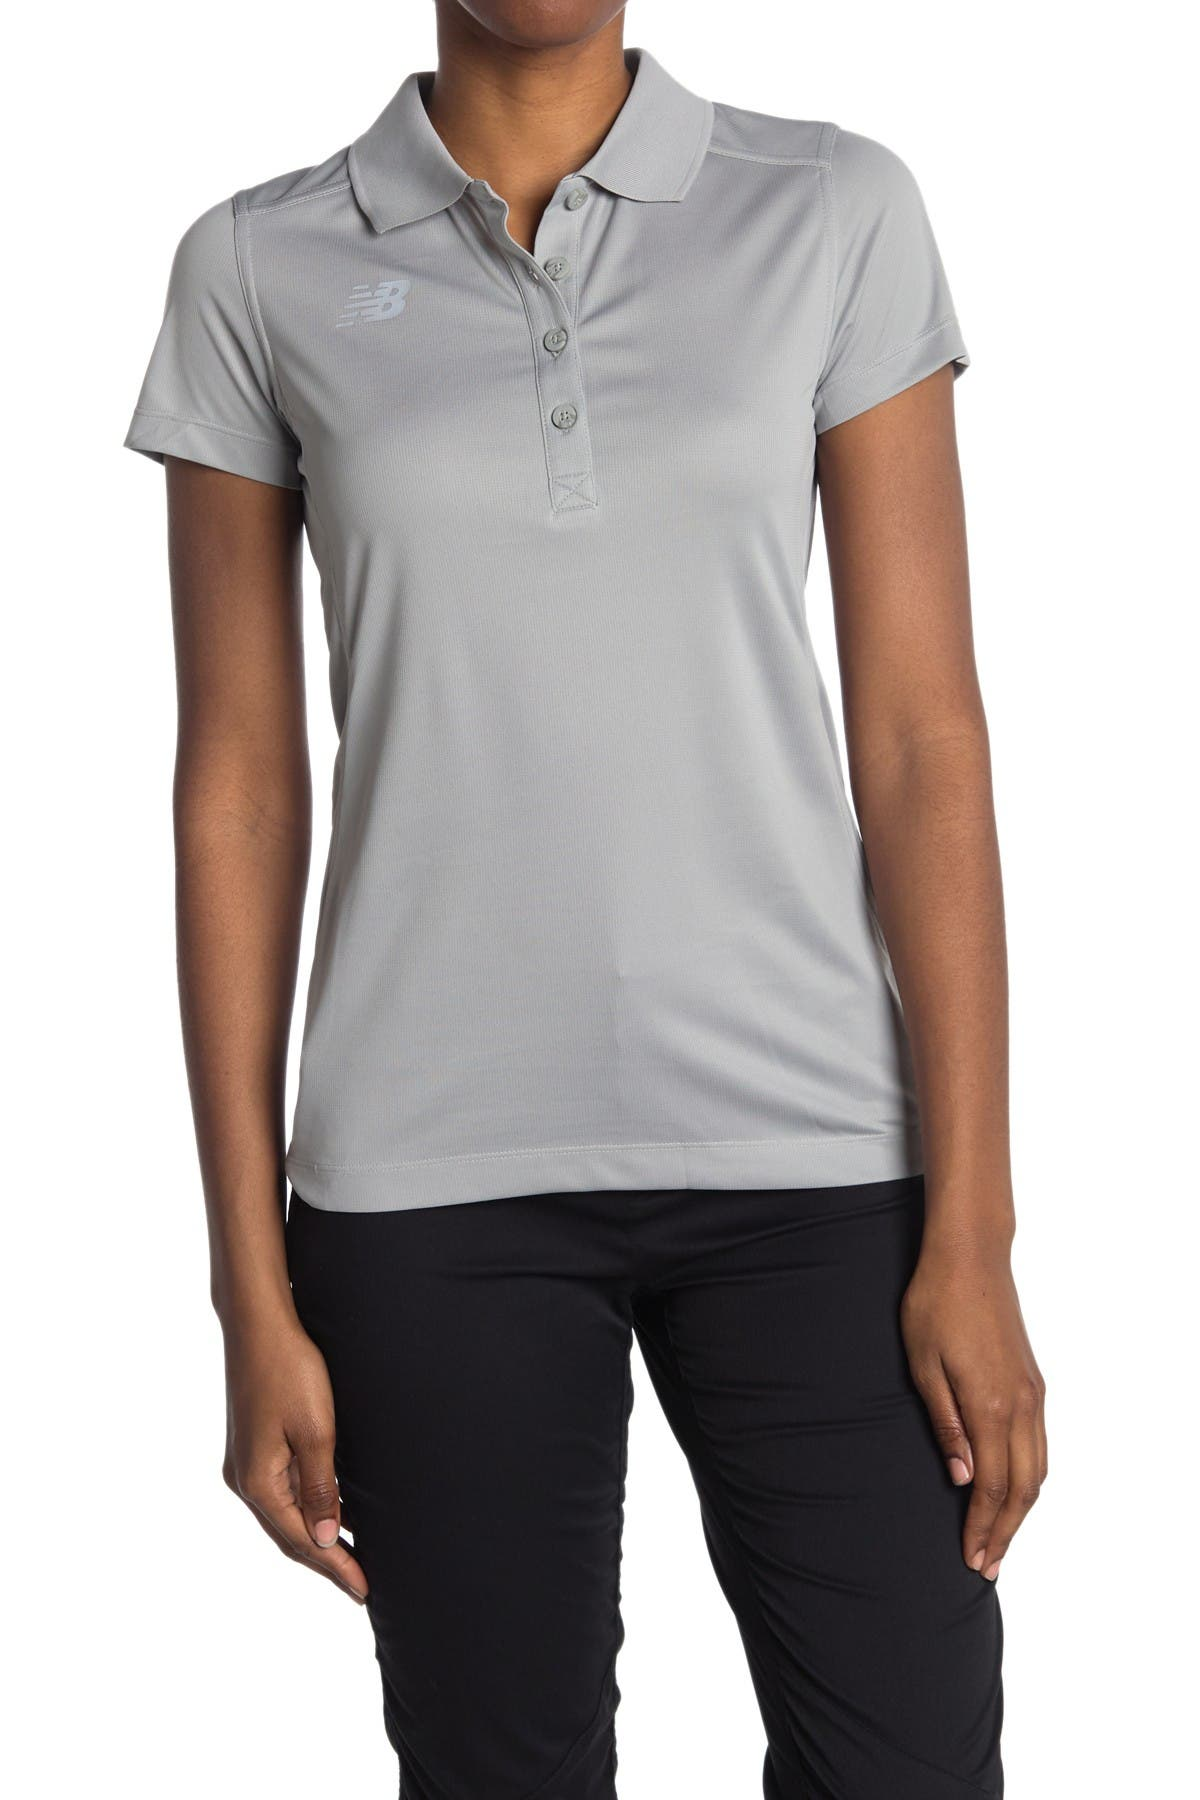 Image of New Balance Performance Tech Polo